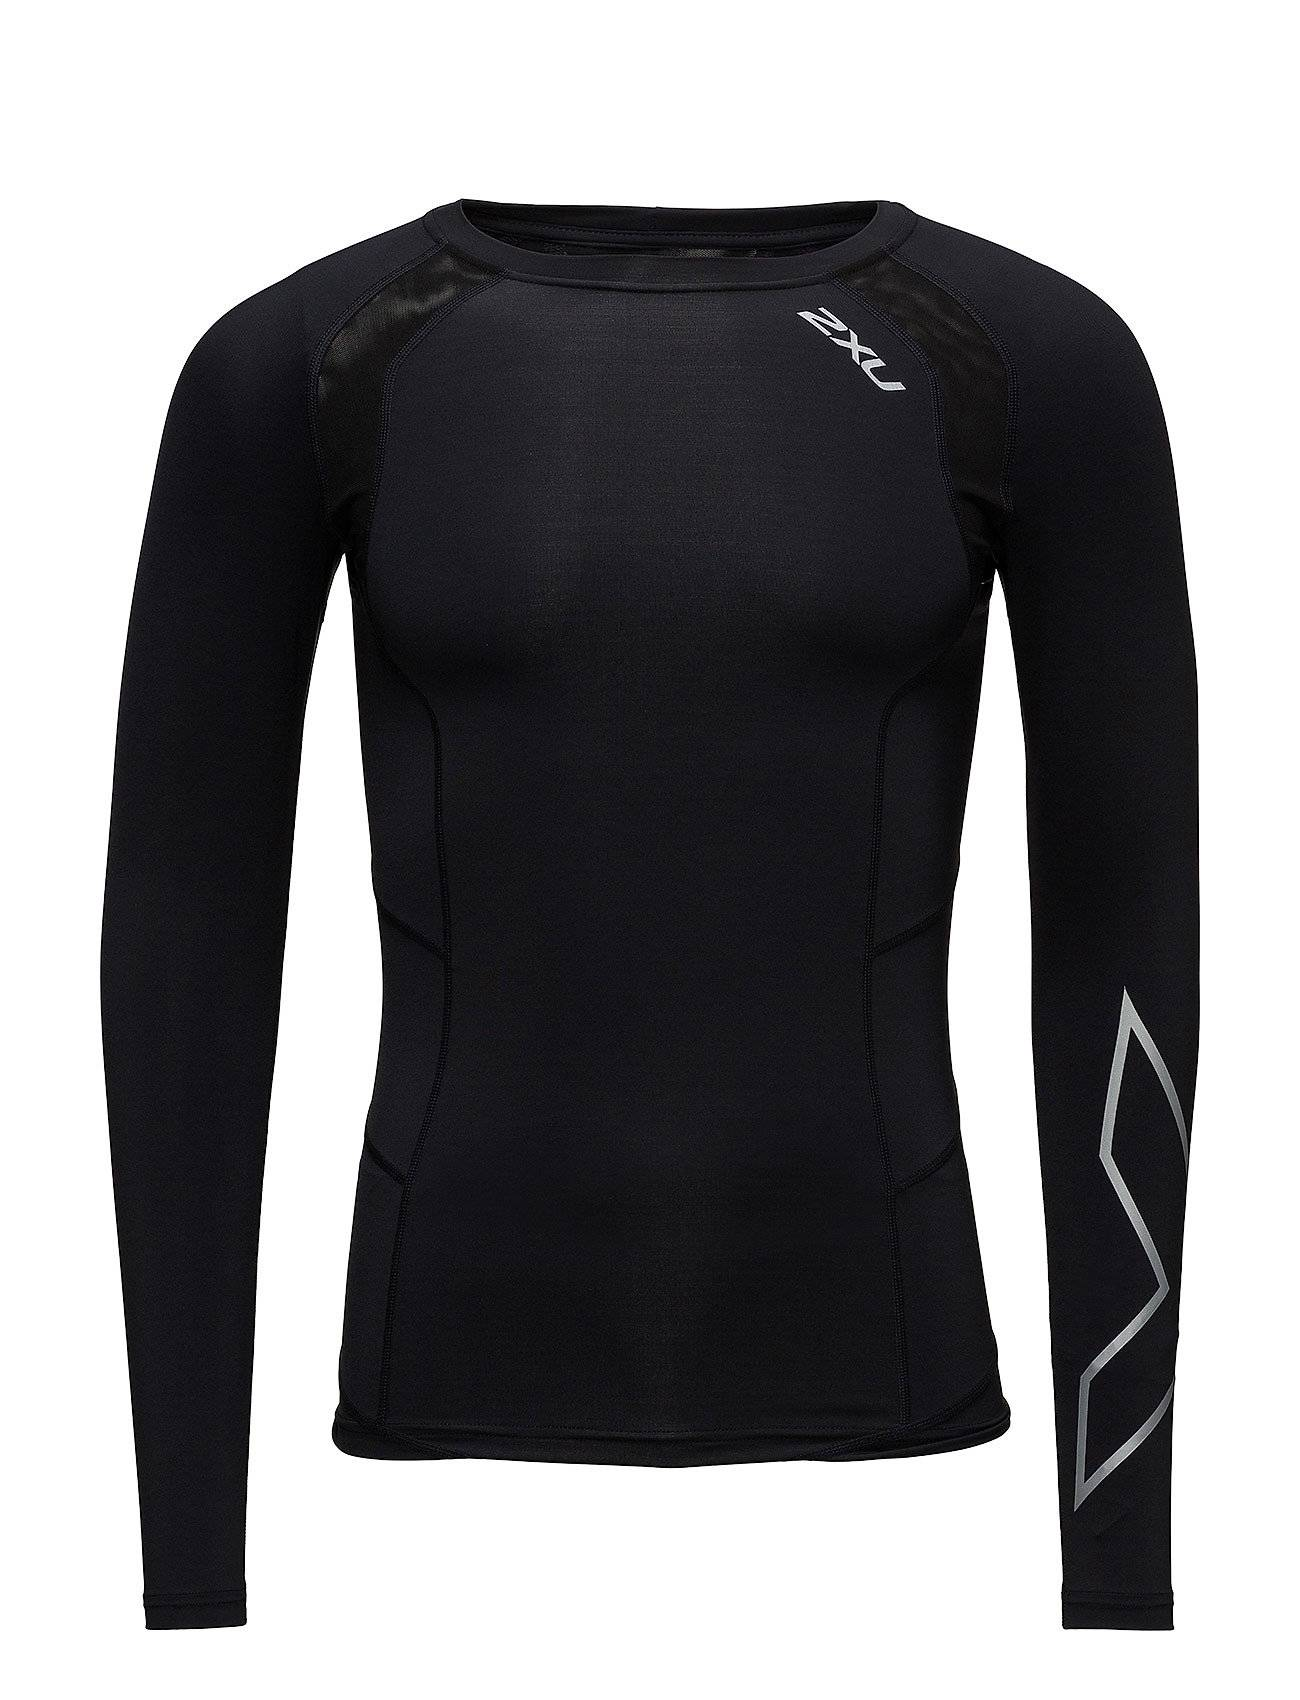 2XU Compression L/S Top